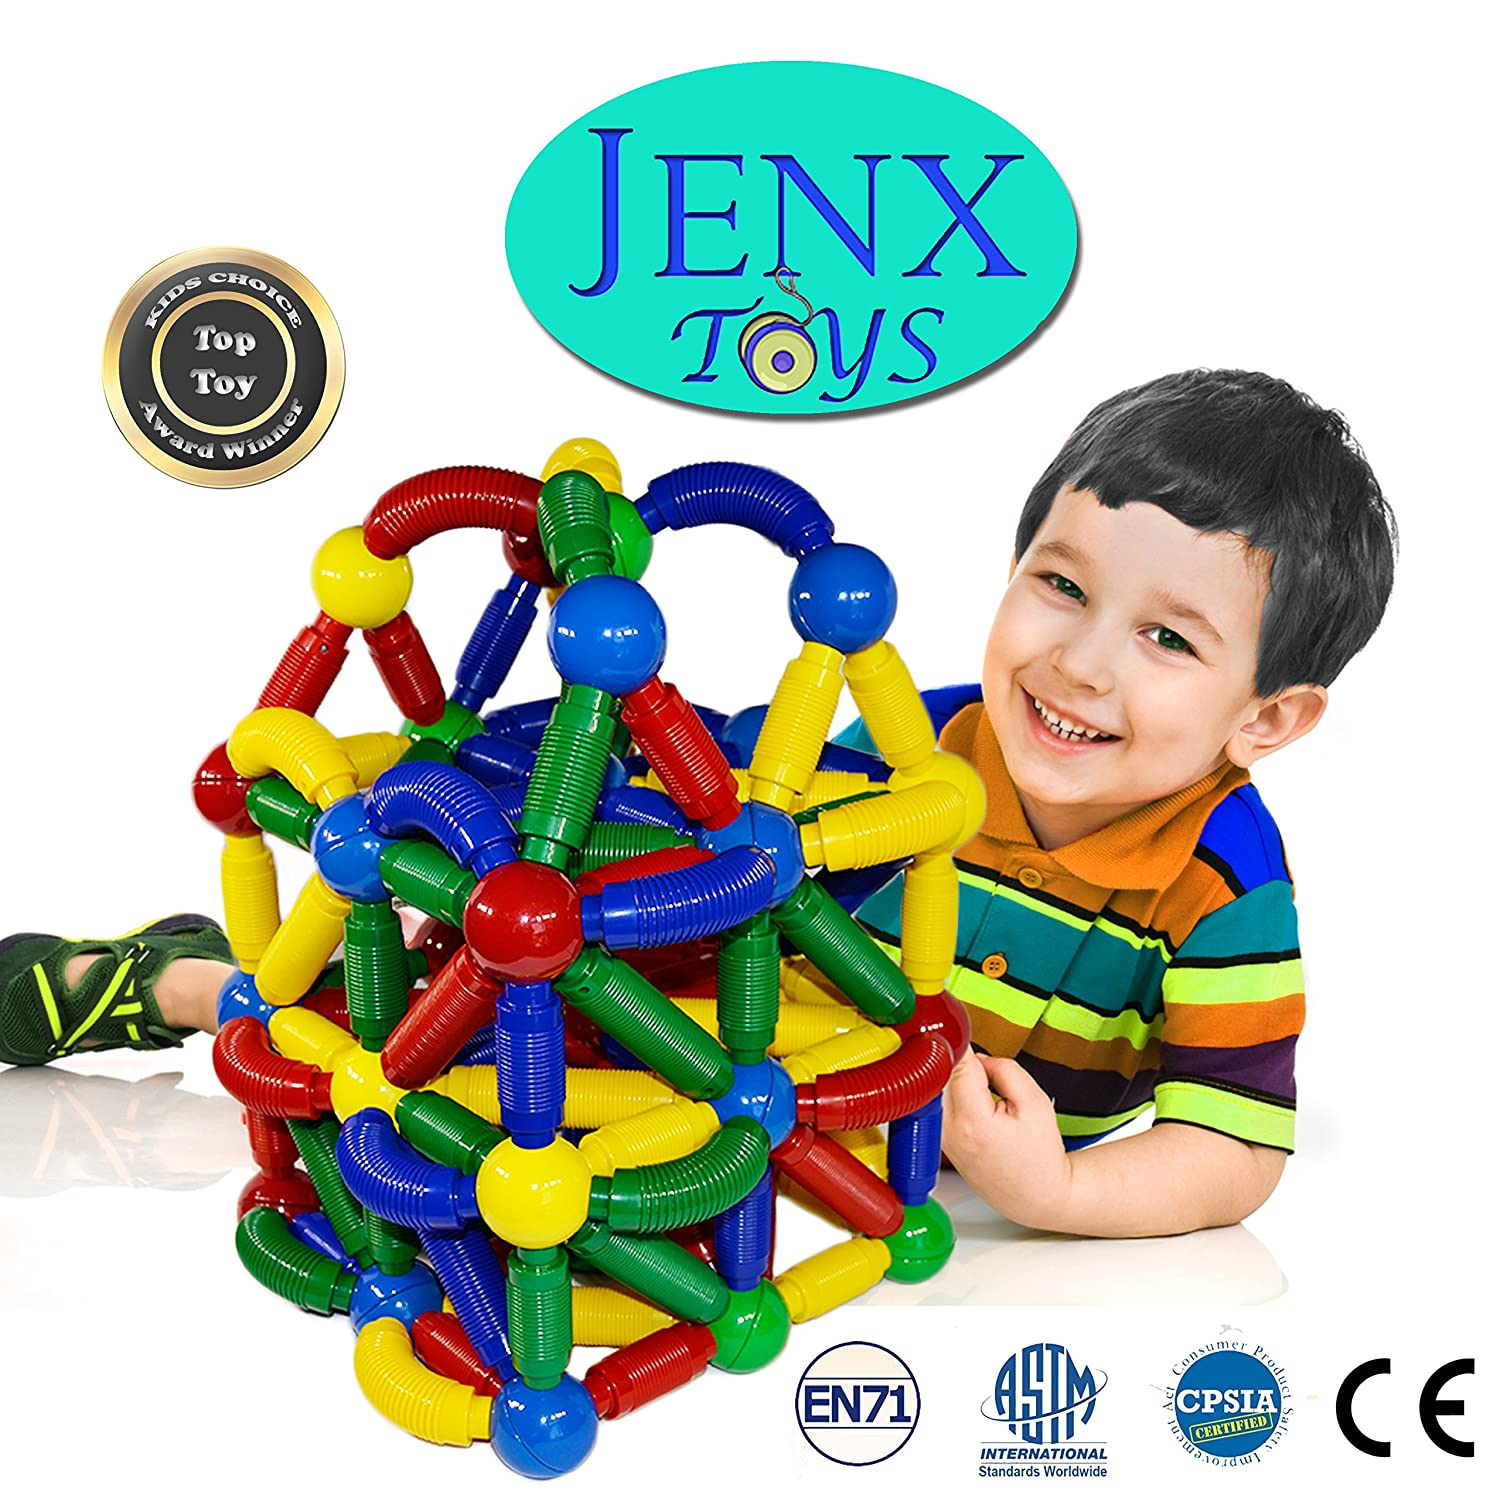 Jenx Toys Jumbo 60 PCS Magnetic Rods and Balls Building Blocks | Construction Stacking Building Set | Award Winning Top Toys Review